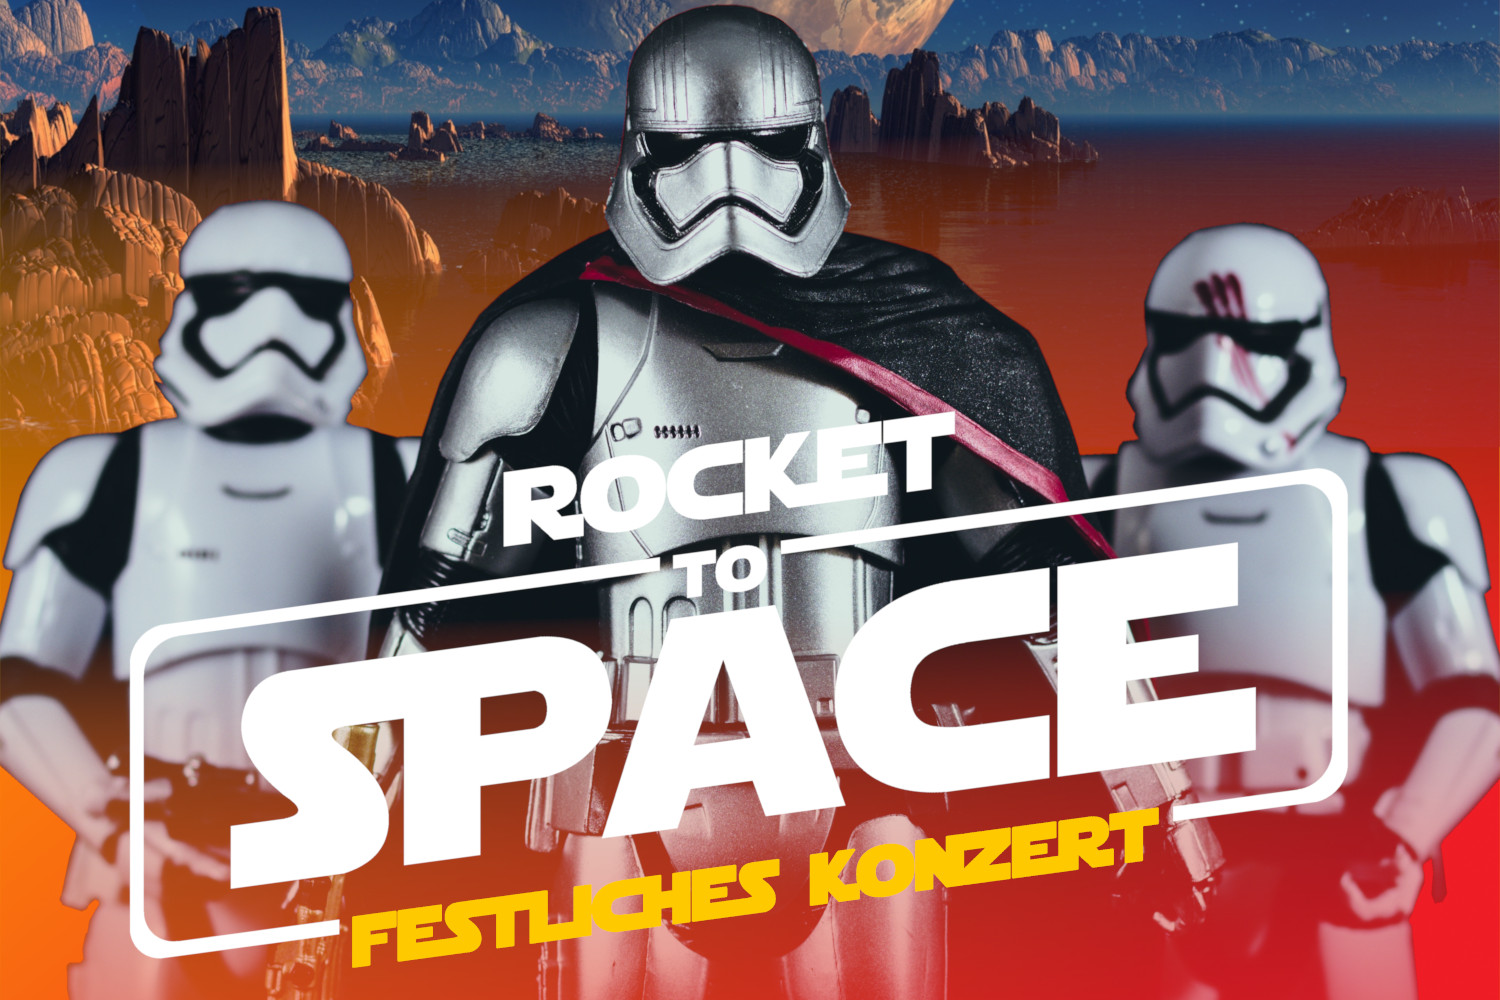 Festliches Konzert 2019 – Rocket to Space